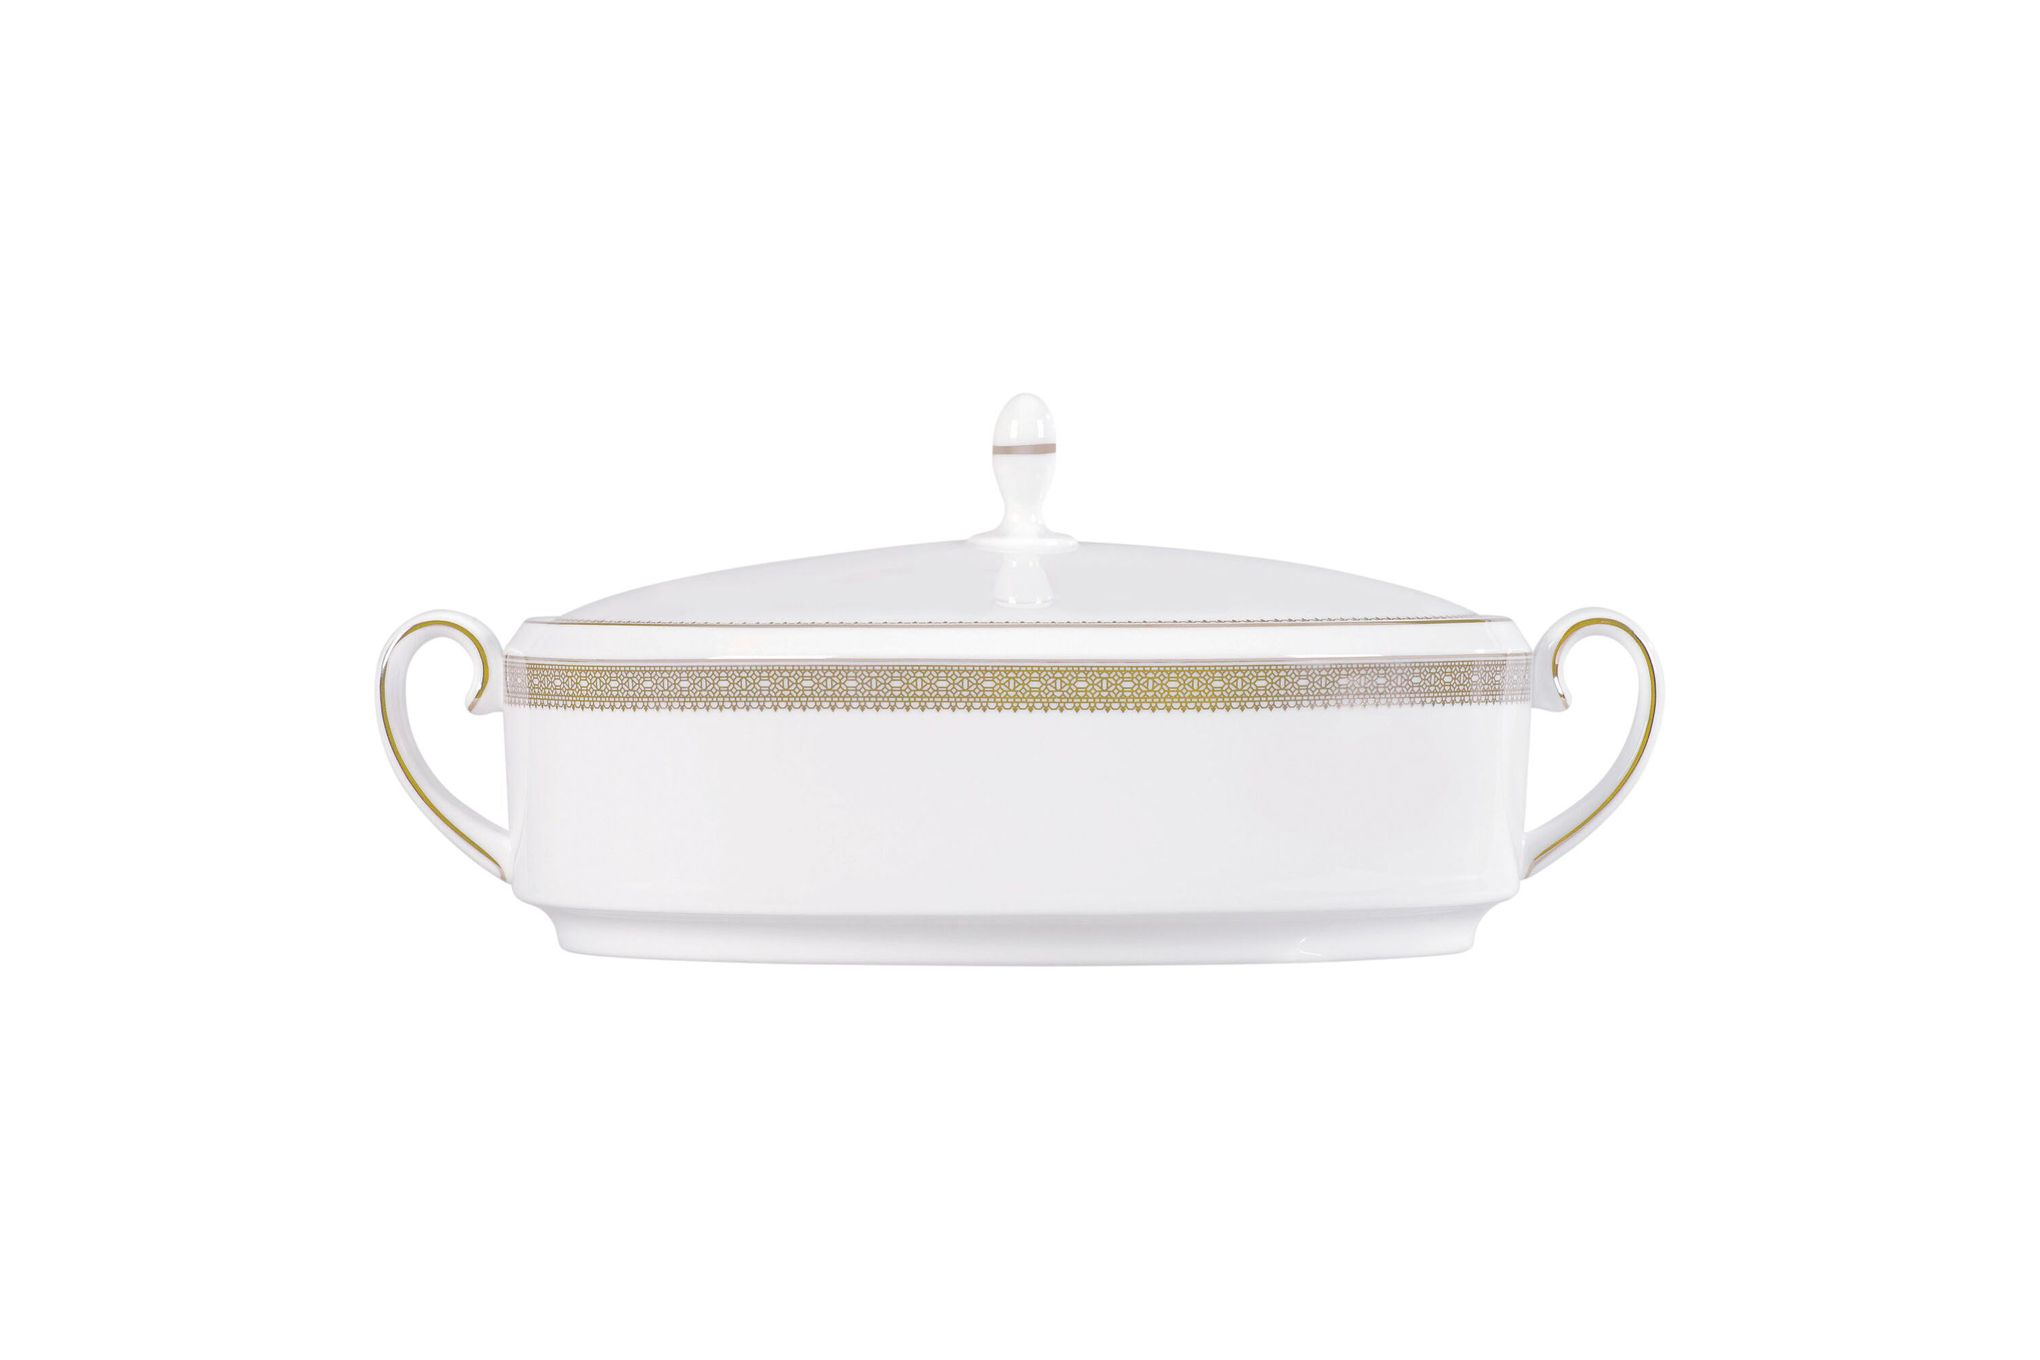 Vera Wang for Wedgwood Lace Gold Vegetable Tureen with Lid thumb 1